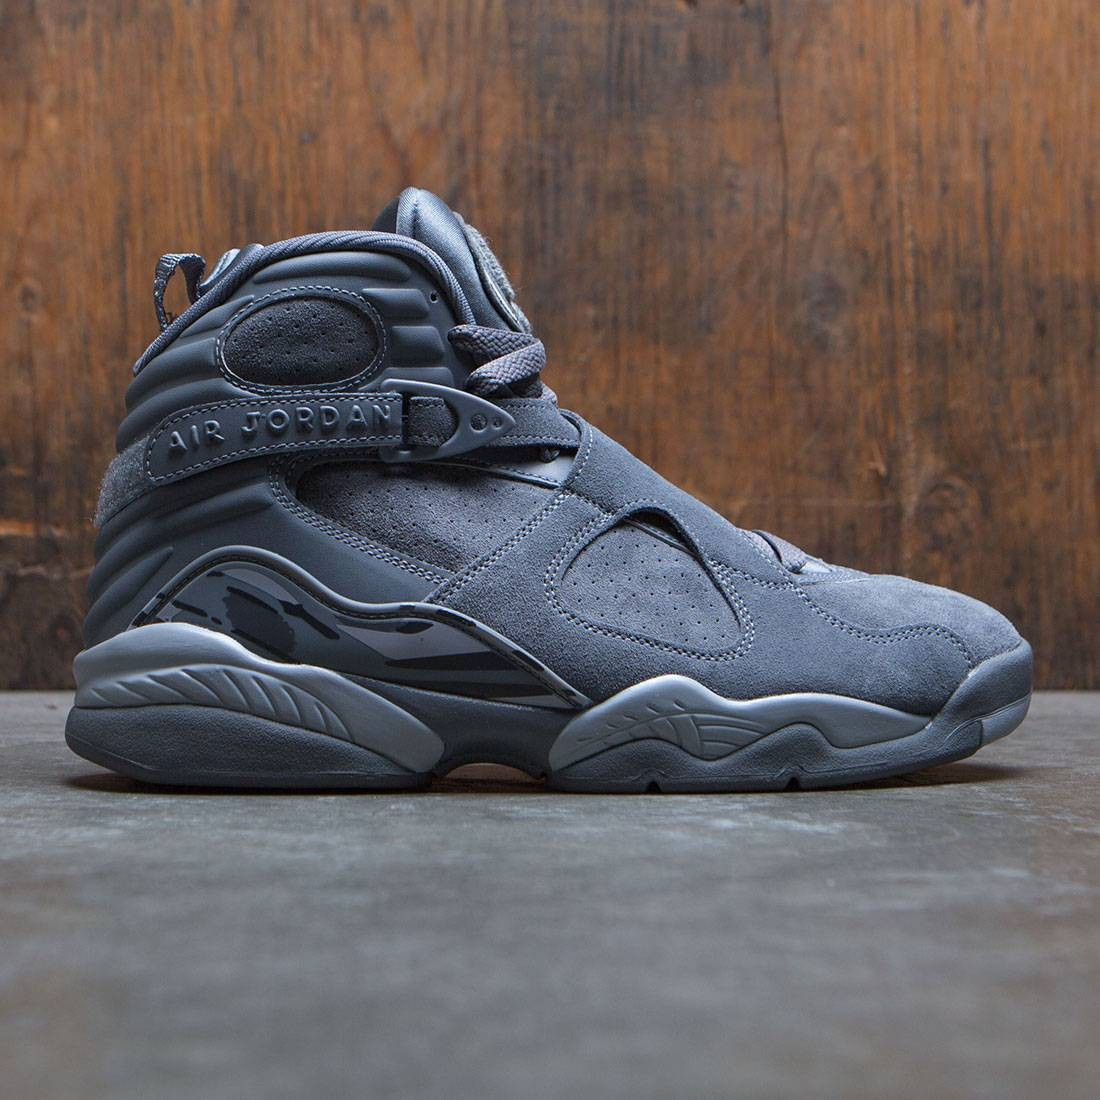 7d0d7a2ddc5af3 jordan men air jordan 8 retro gray cool grey wolf grey cool grey